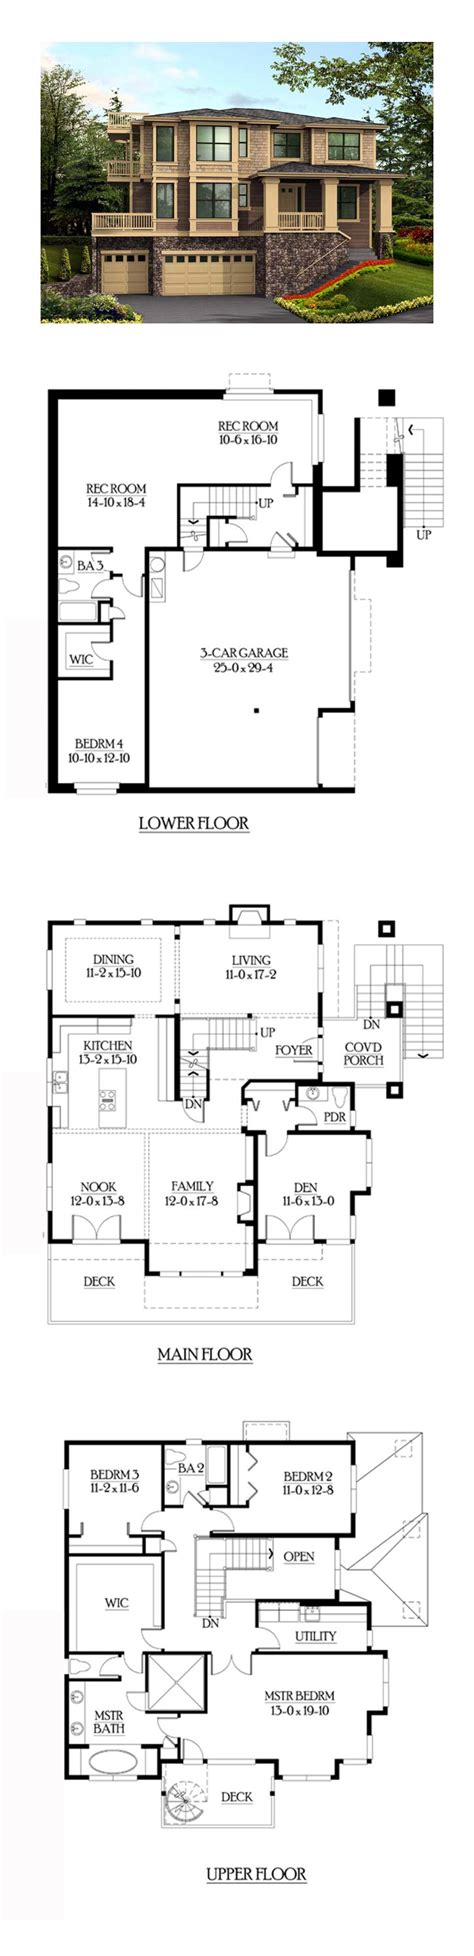 house plans with finished basement best 25 basement house plans ideas on basement floor plans house layouts and